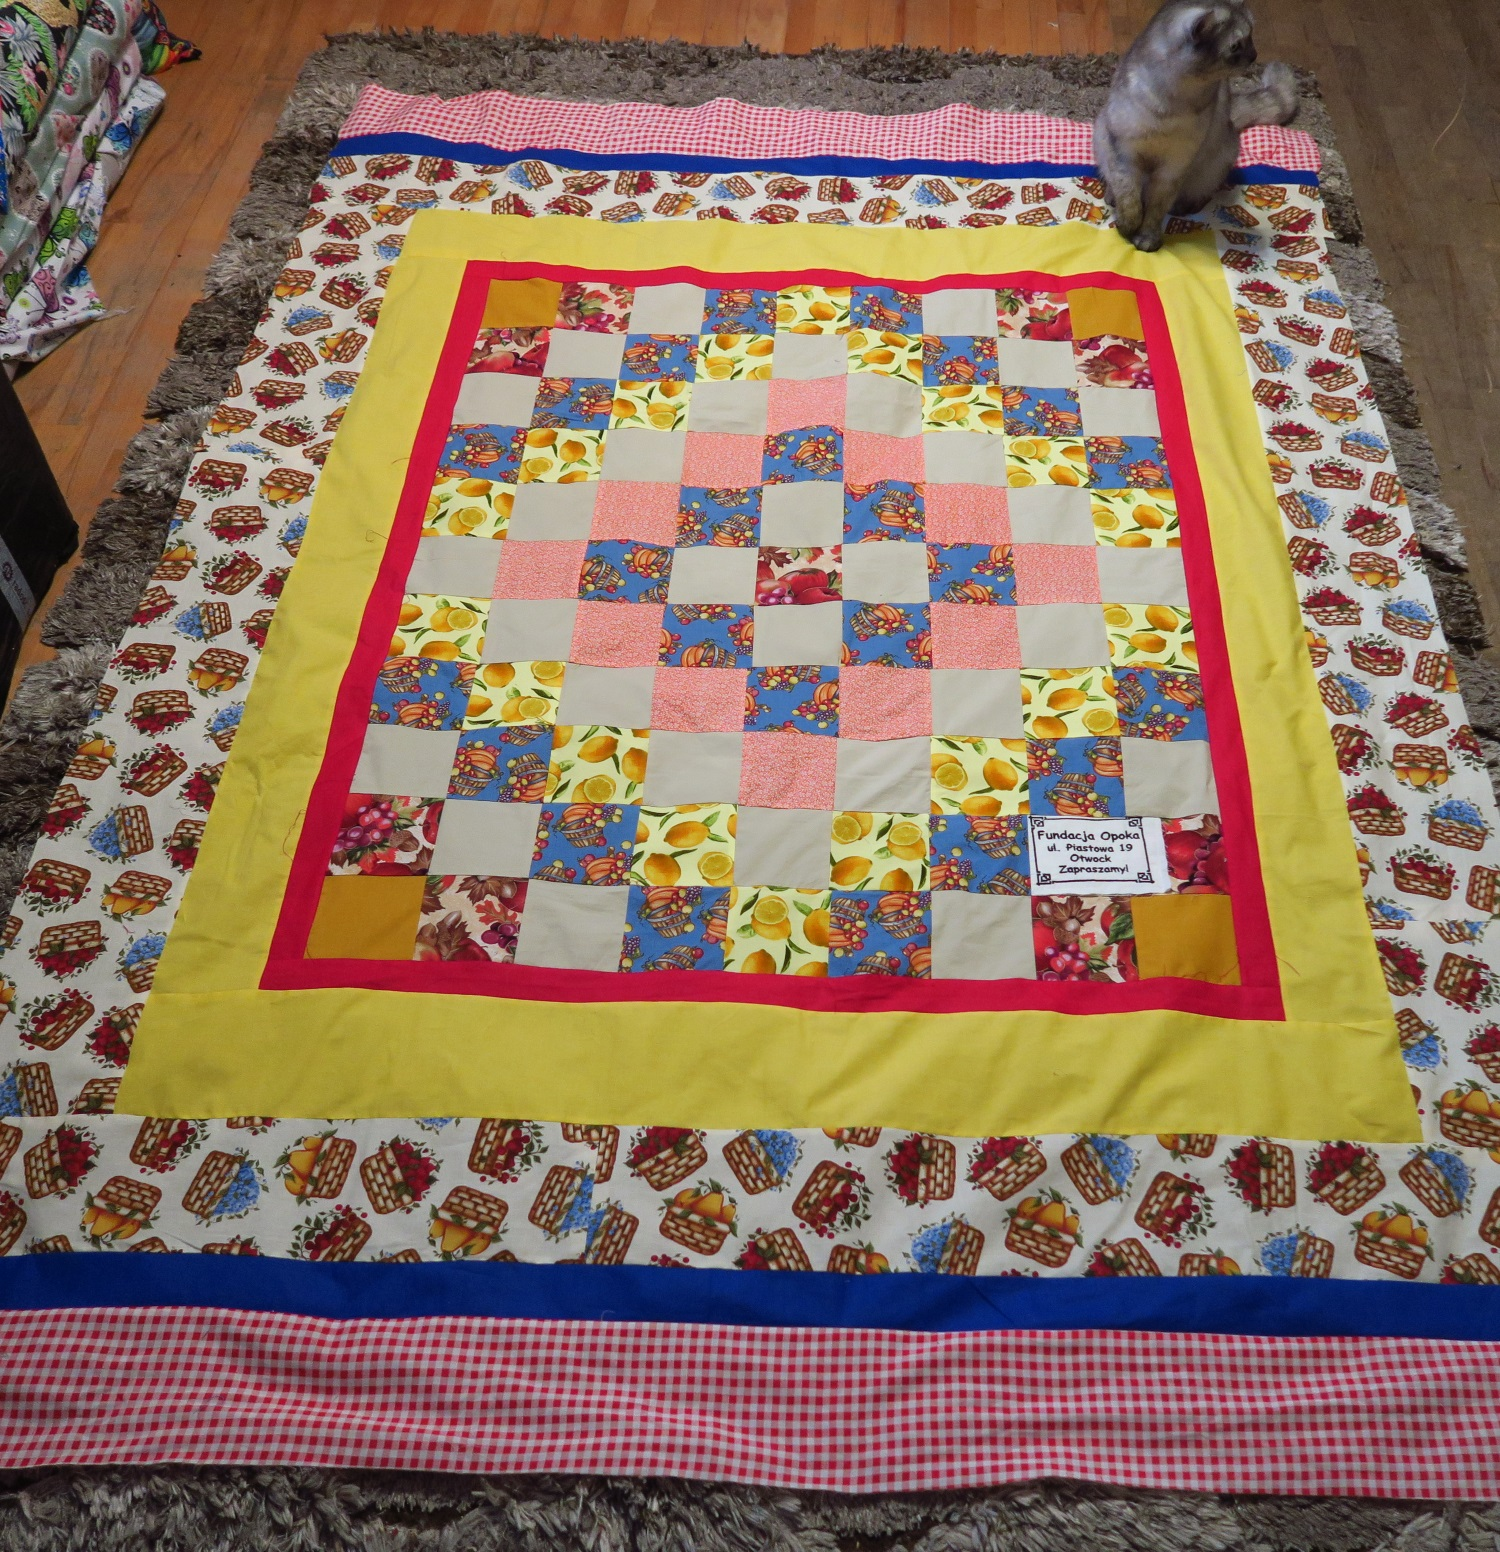 Fran made the center. I added the borders. The cat with the hurt paw is on it.  Yes, it's still not right. Gotta go back to the vet.